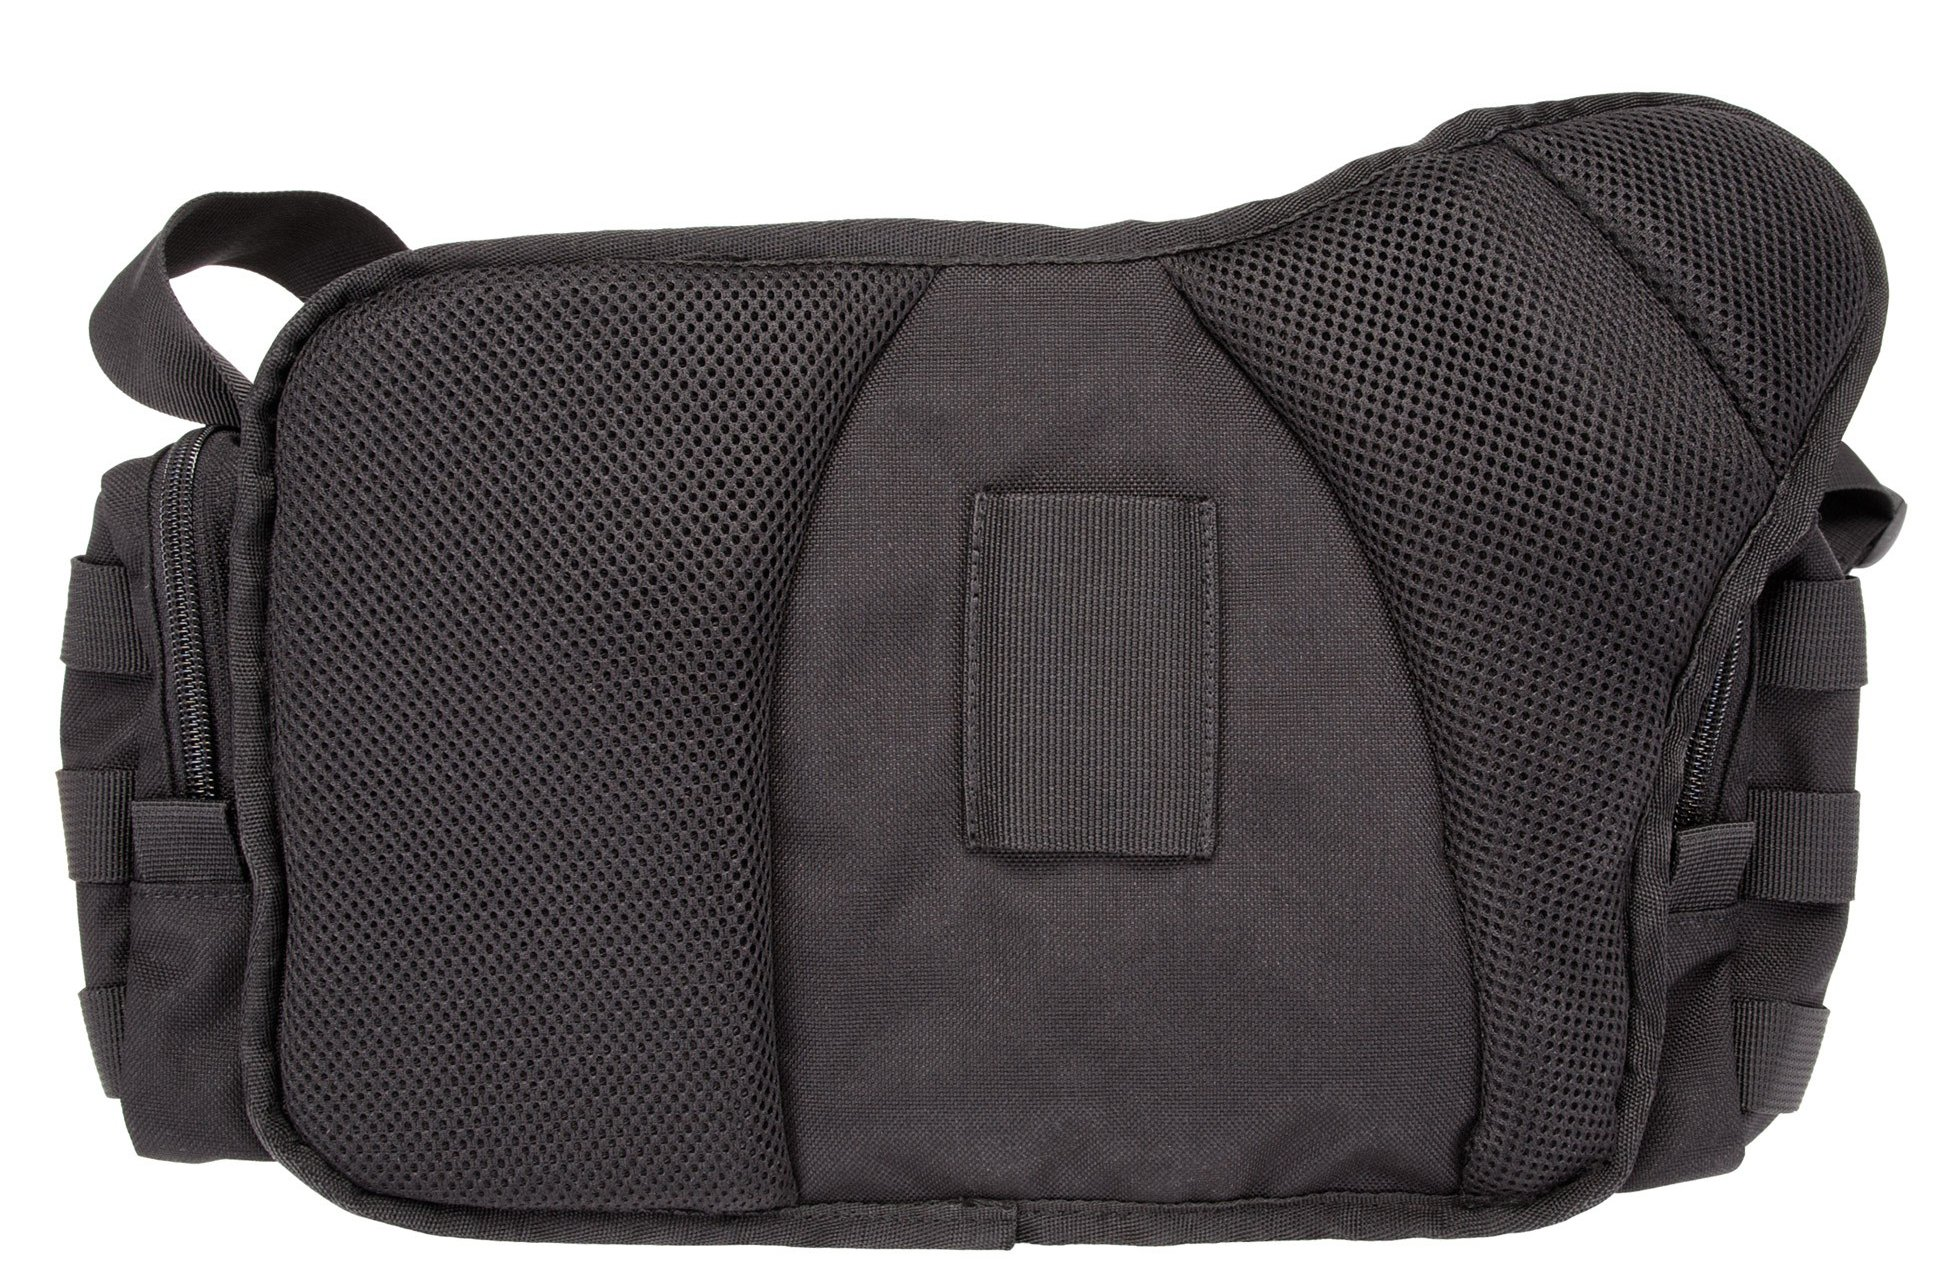 5.11 Tactical Bail Out Bag Molle Ammo Magazine Carrier Pack for Responders, Style 56026 by 5.11 (Image #4)